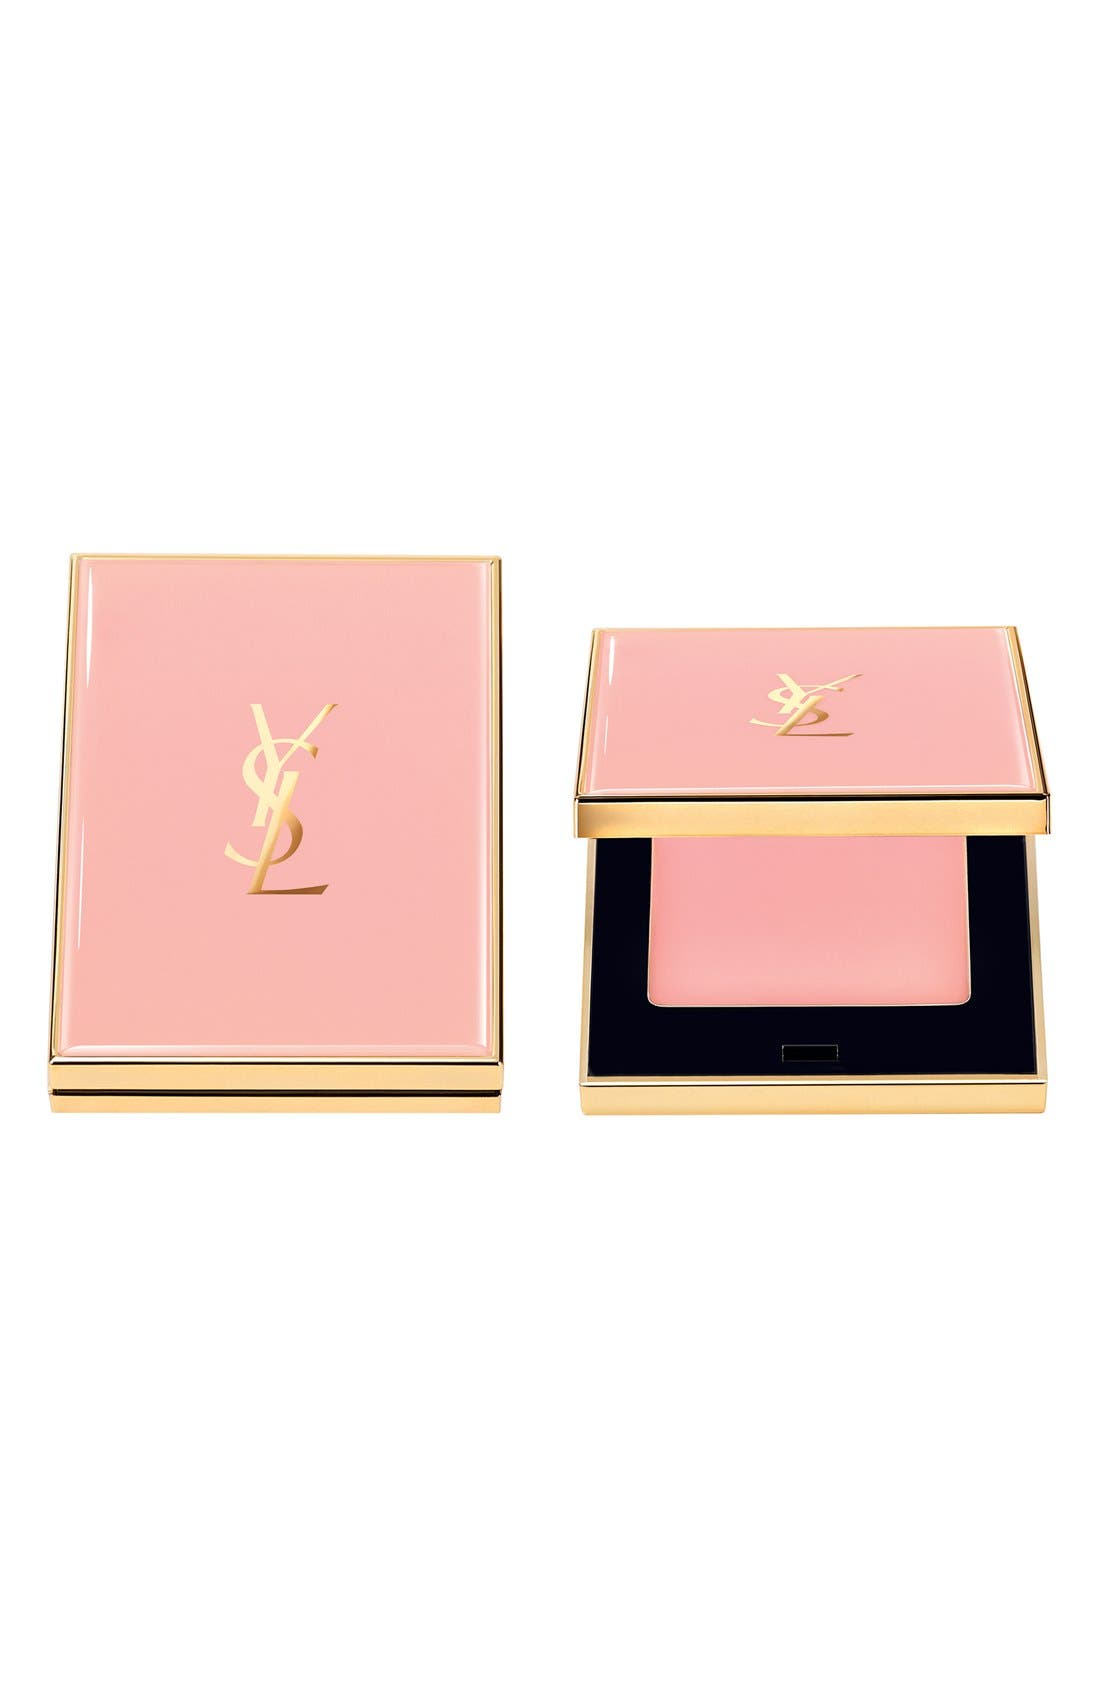 Yves Saint Laurent 'Touche Éclat' Blur Perfector